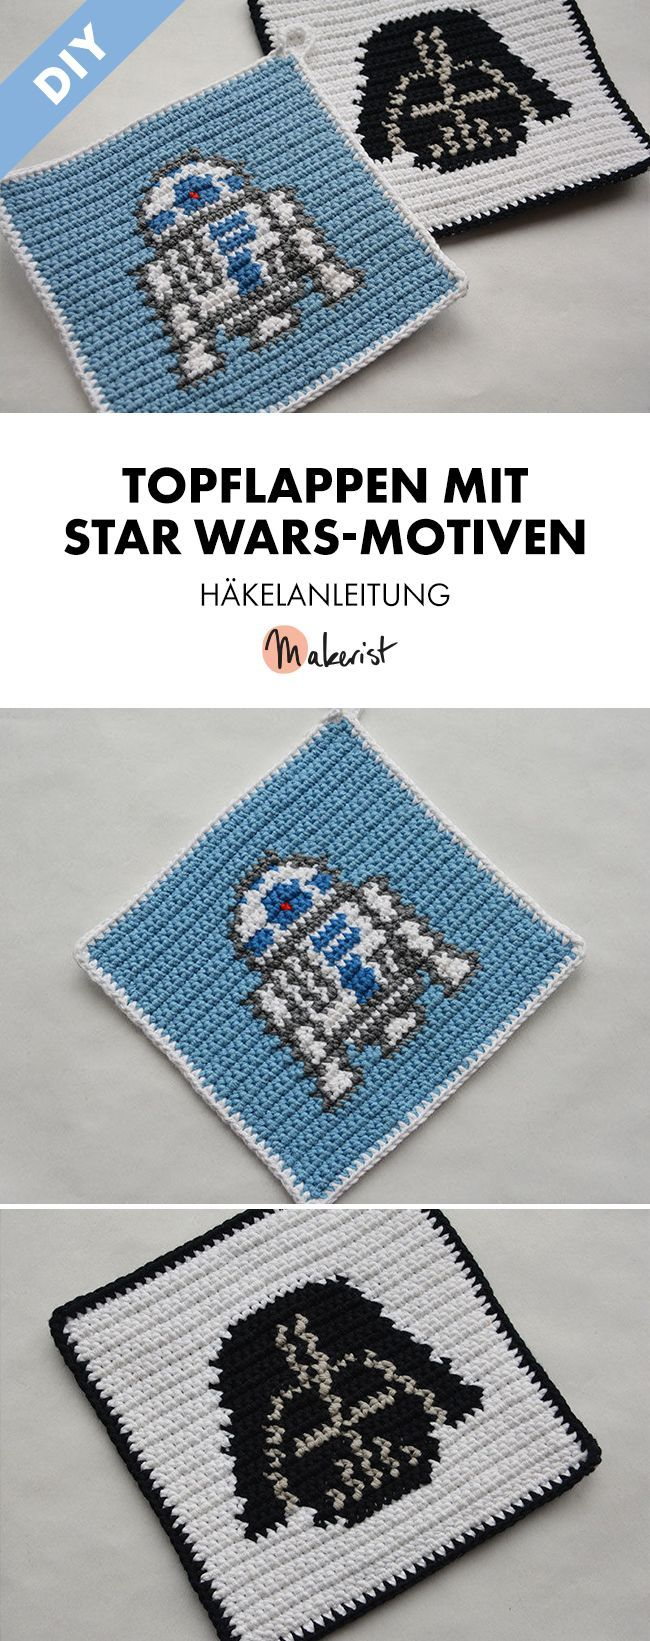 161 best Häkeln images on Pinterest | Amigurumi, Amigurumi patterns ...